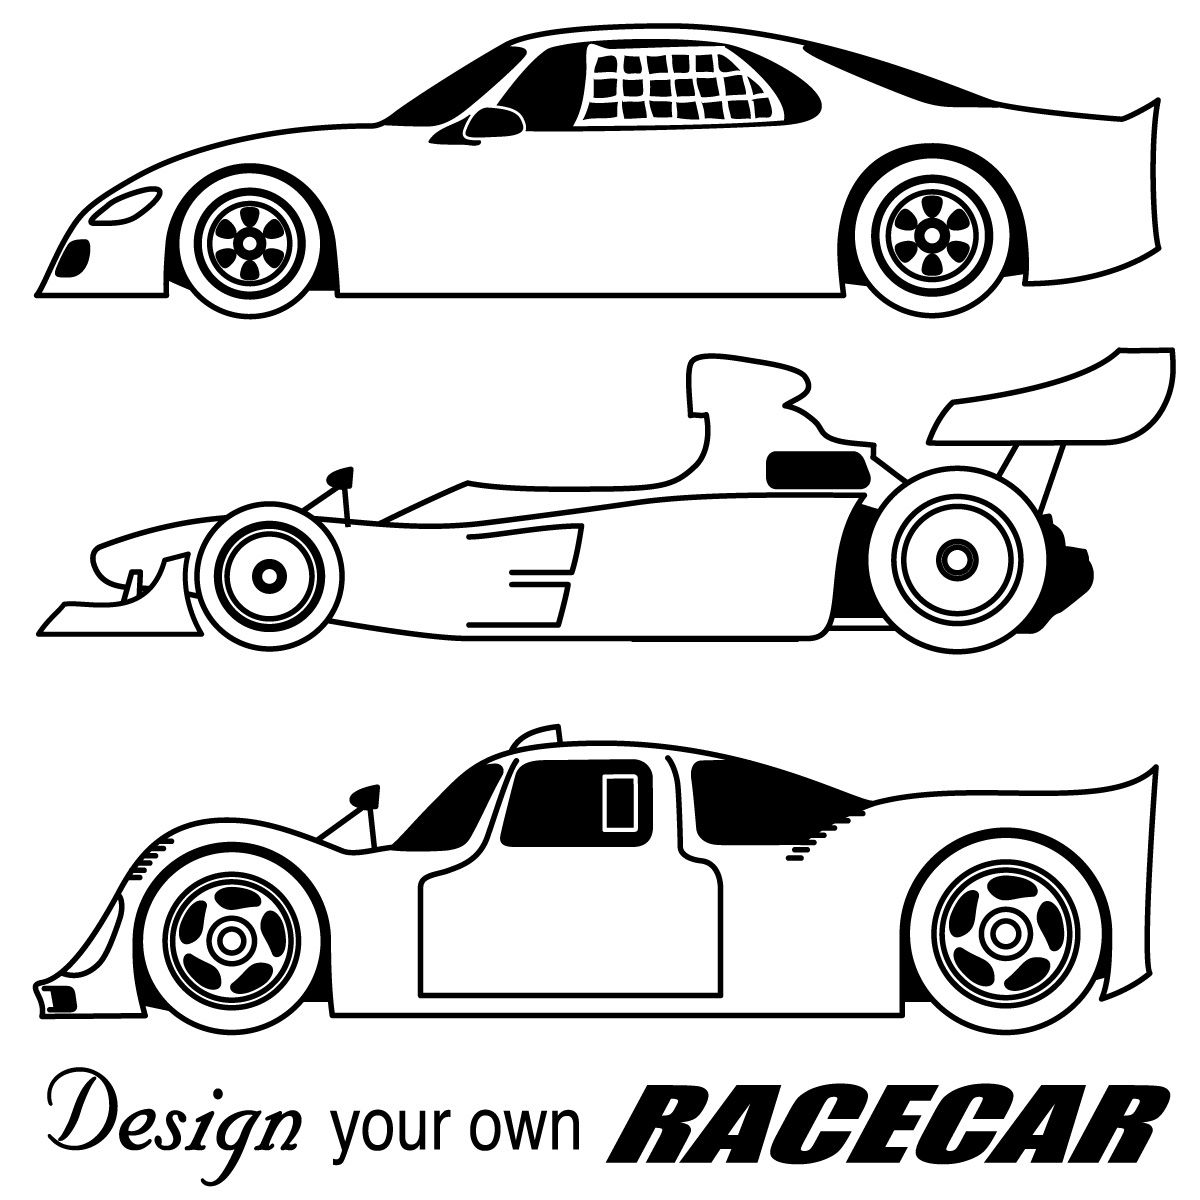 race car coloring pages printable racing cars coloring pages to download and print for free printable coloring car race pages